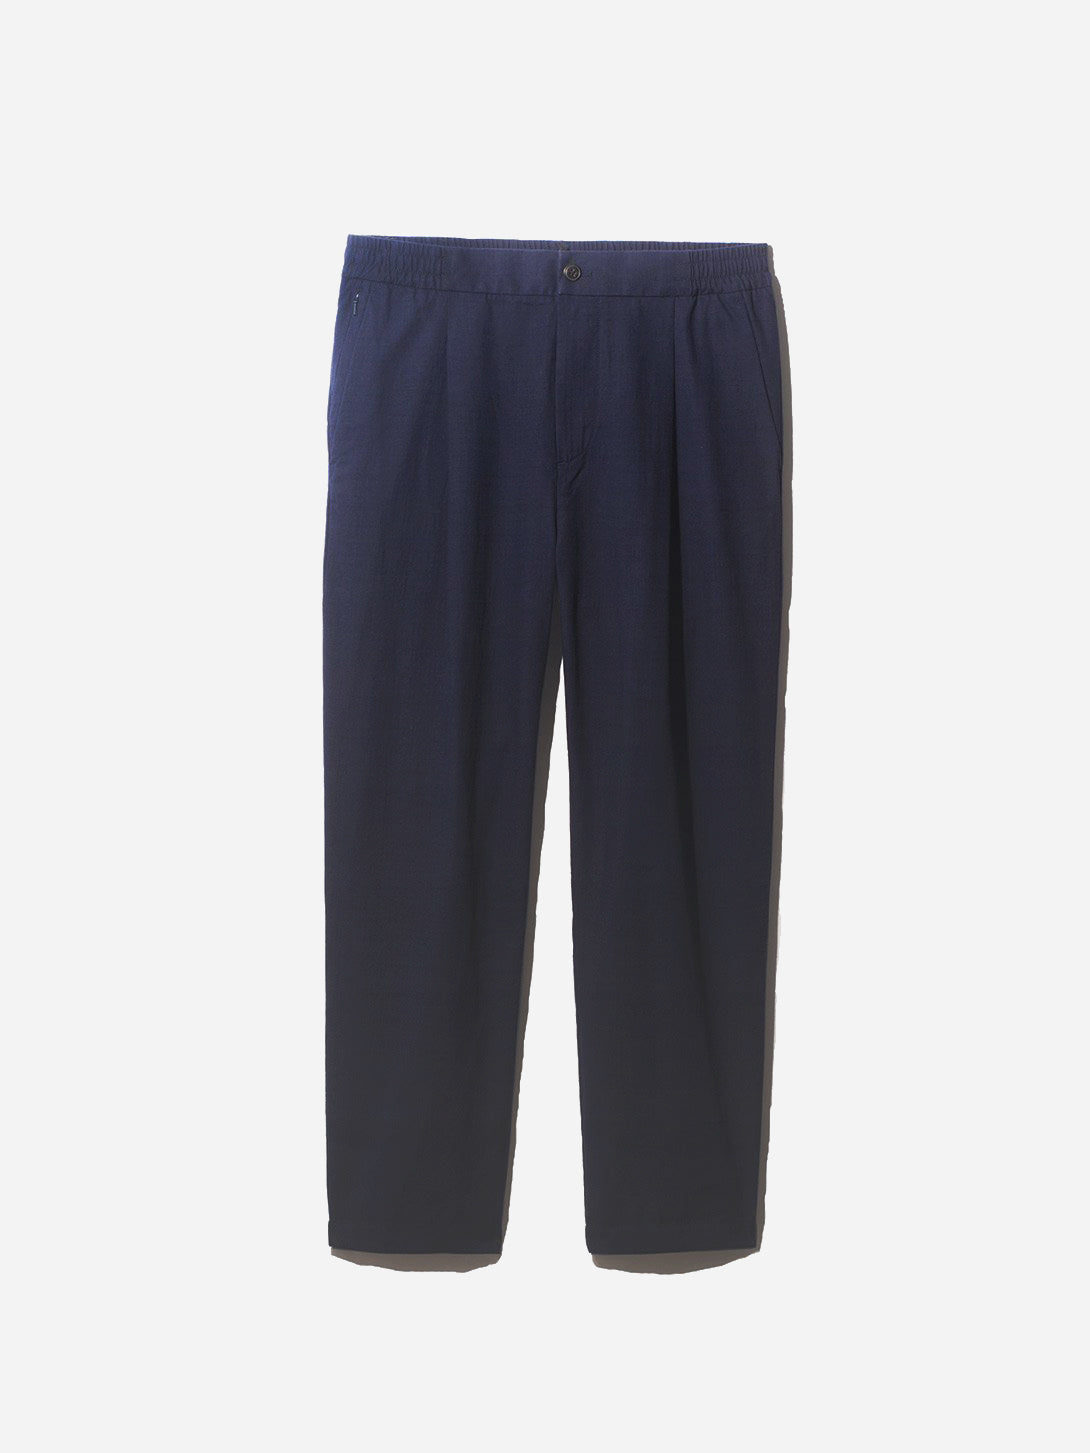 WARD COTTON PANT NAVY GREY LABEL